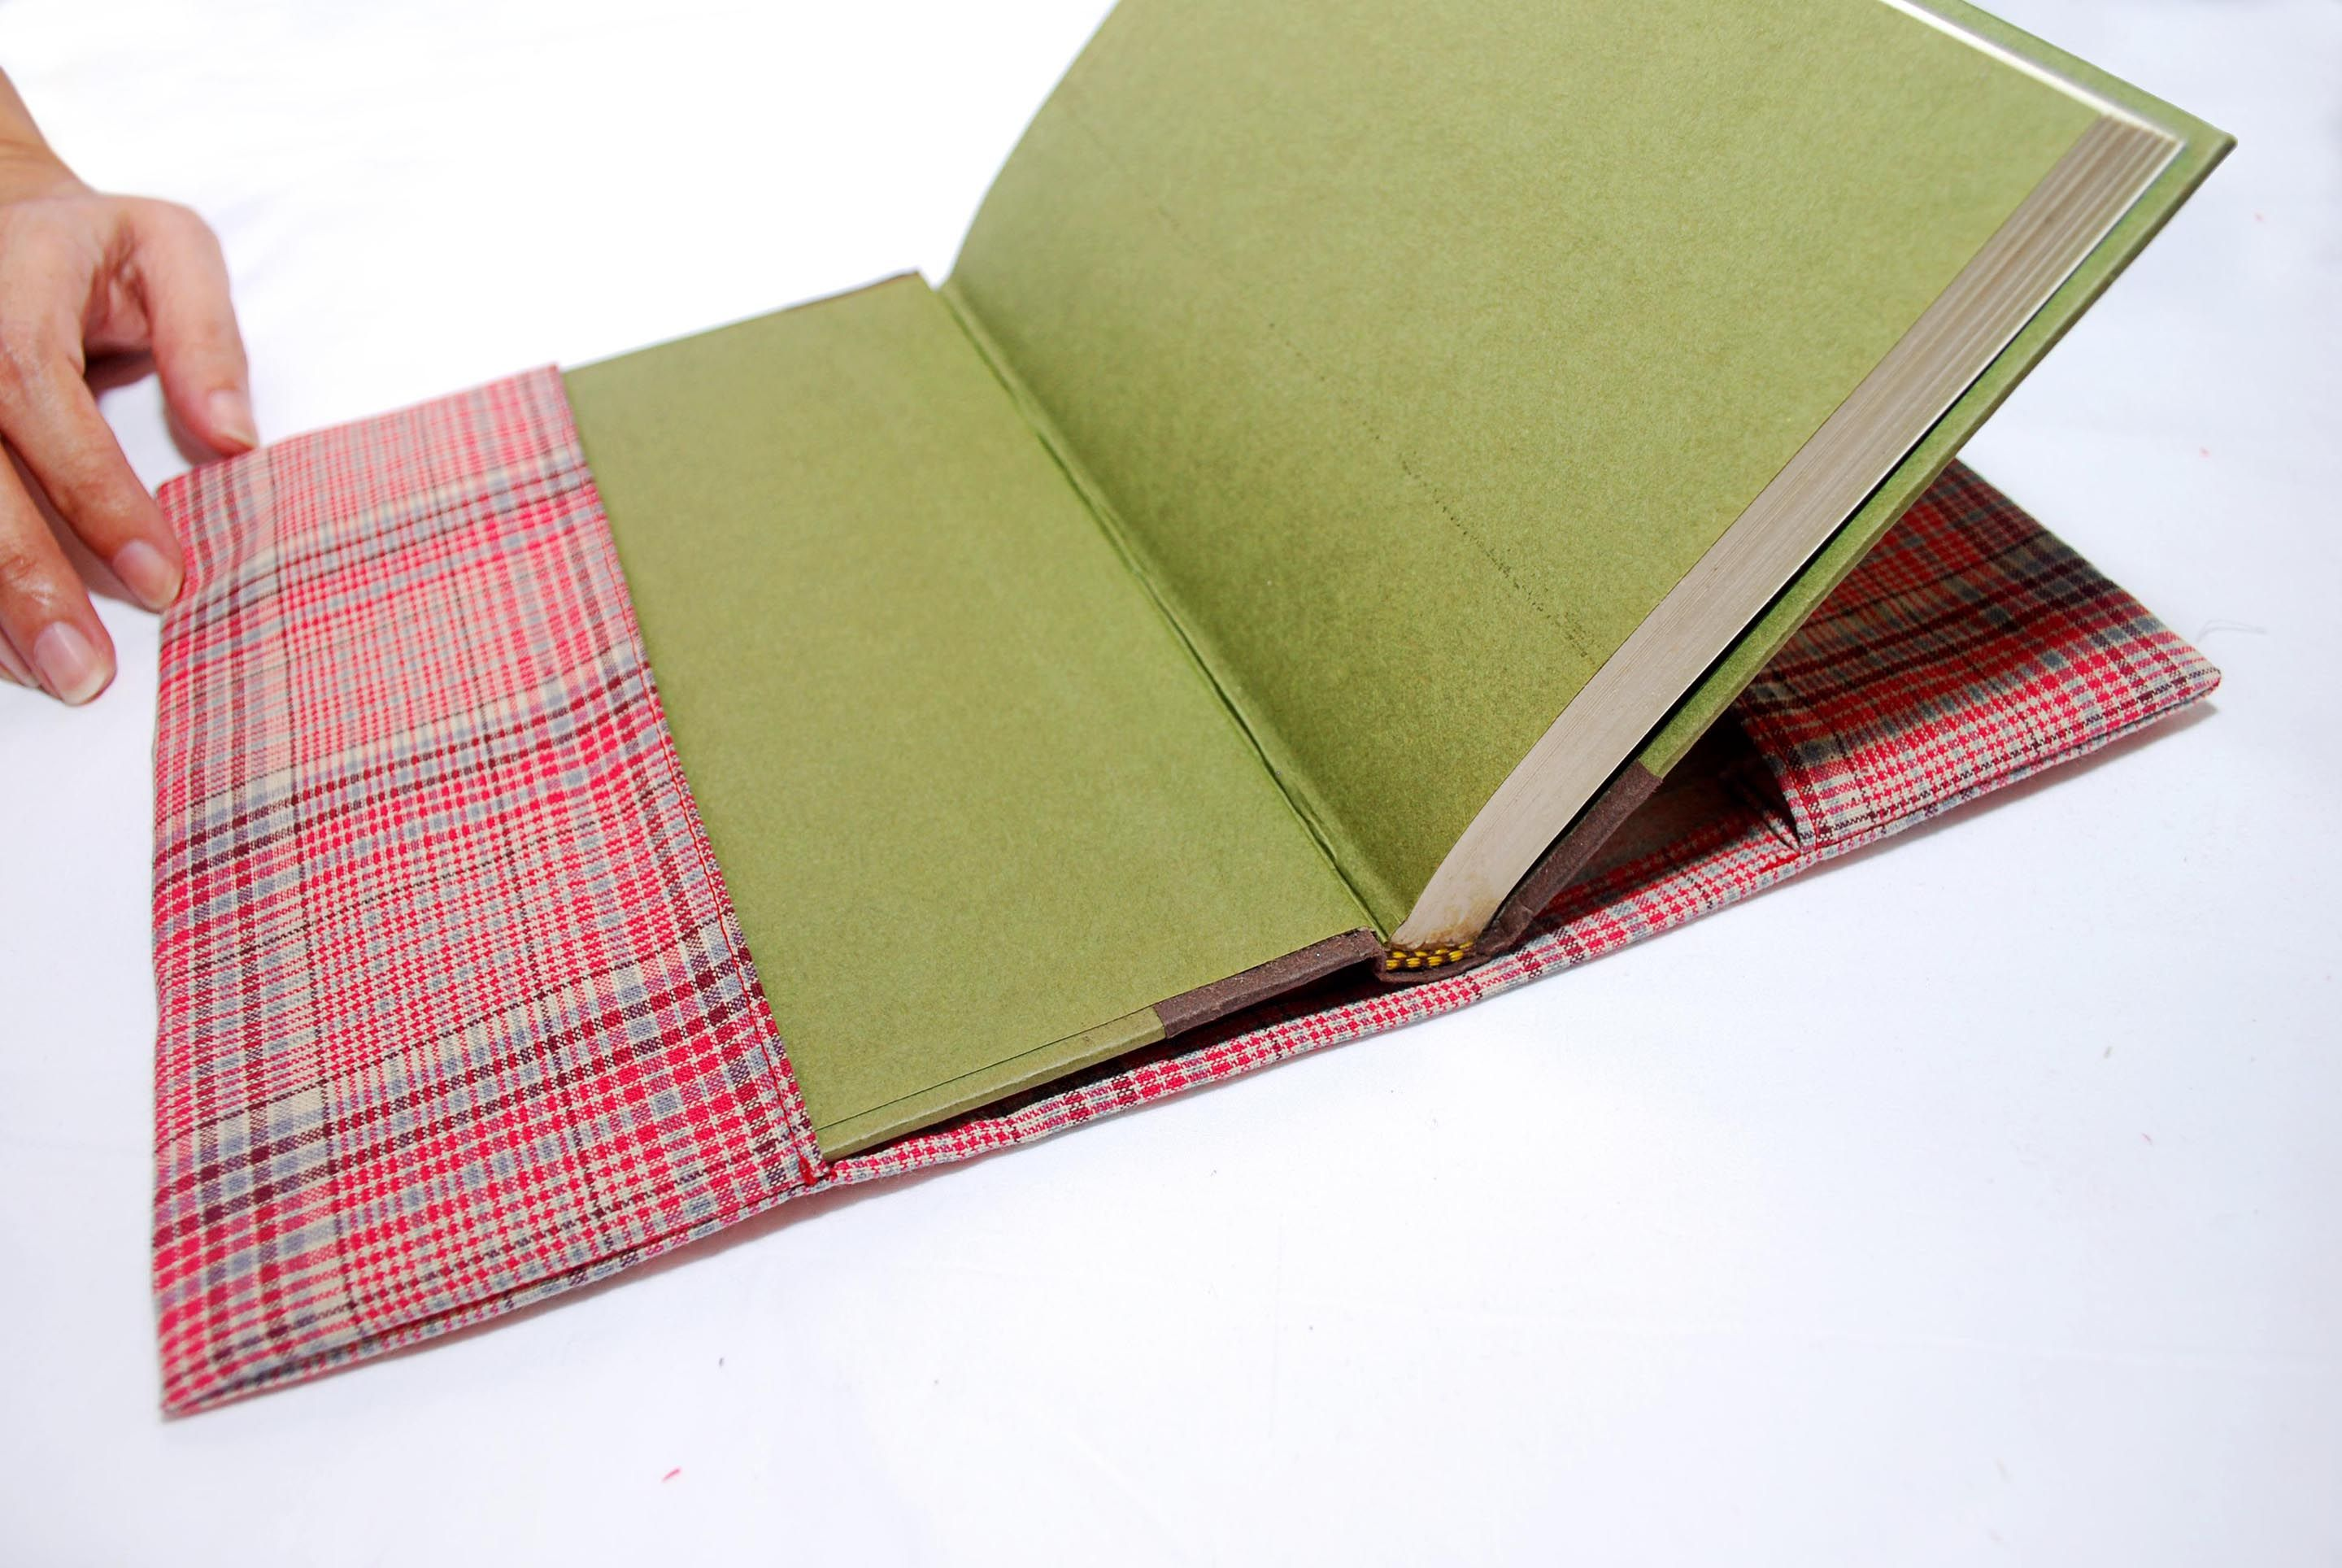 sew a fabric book cover fabric book covers book covers and fabrics